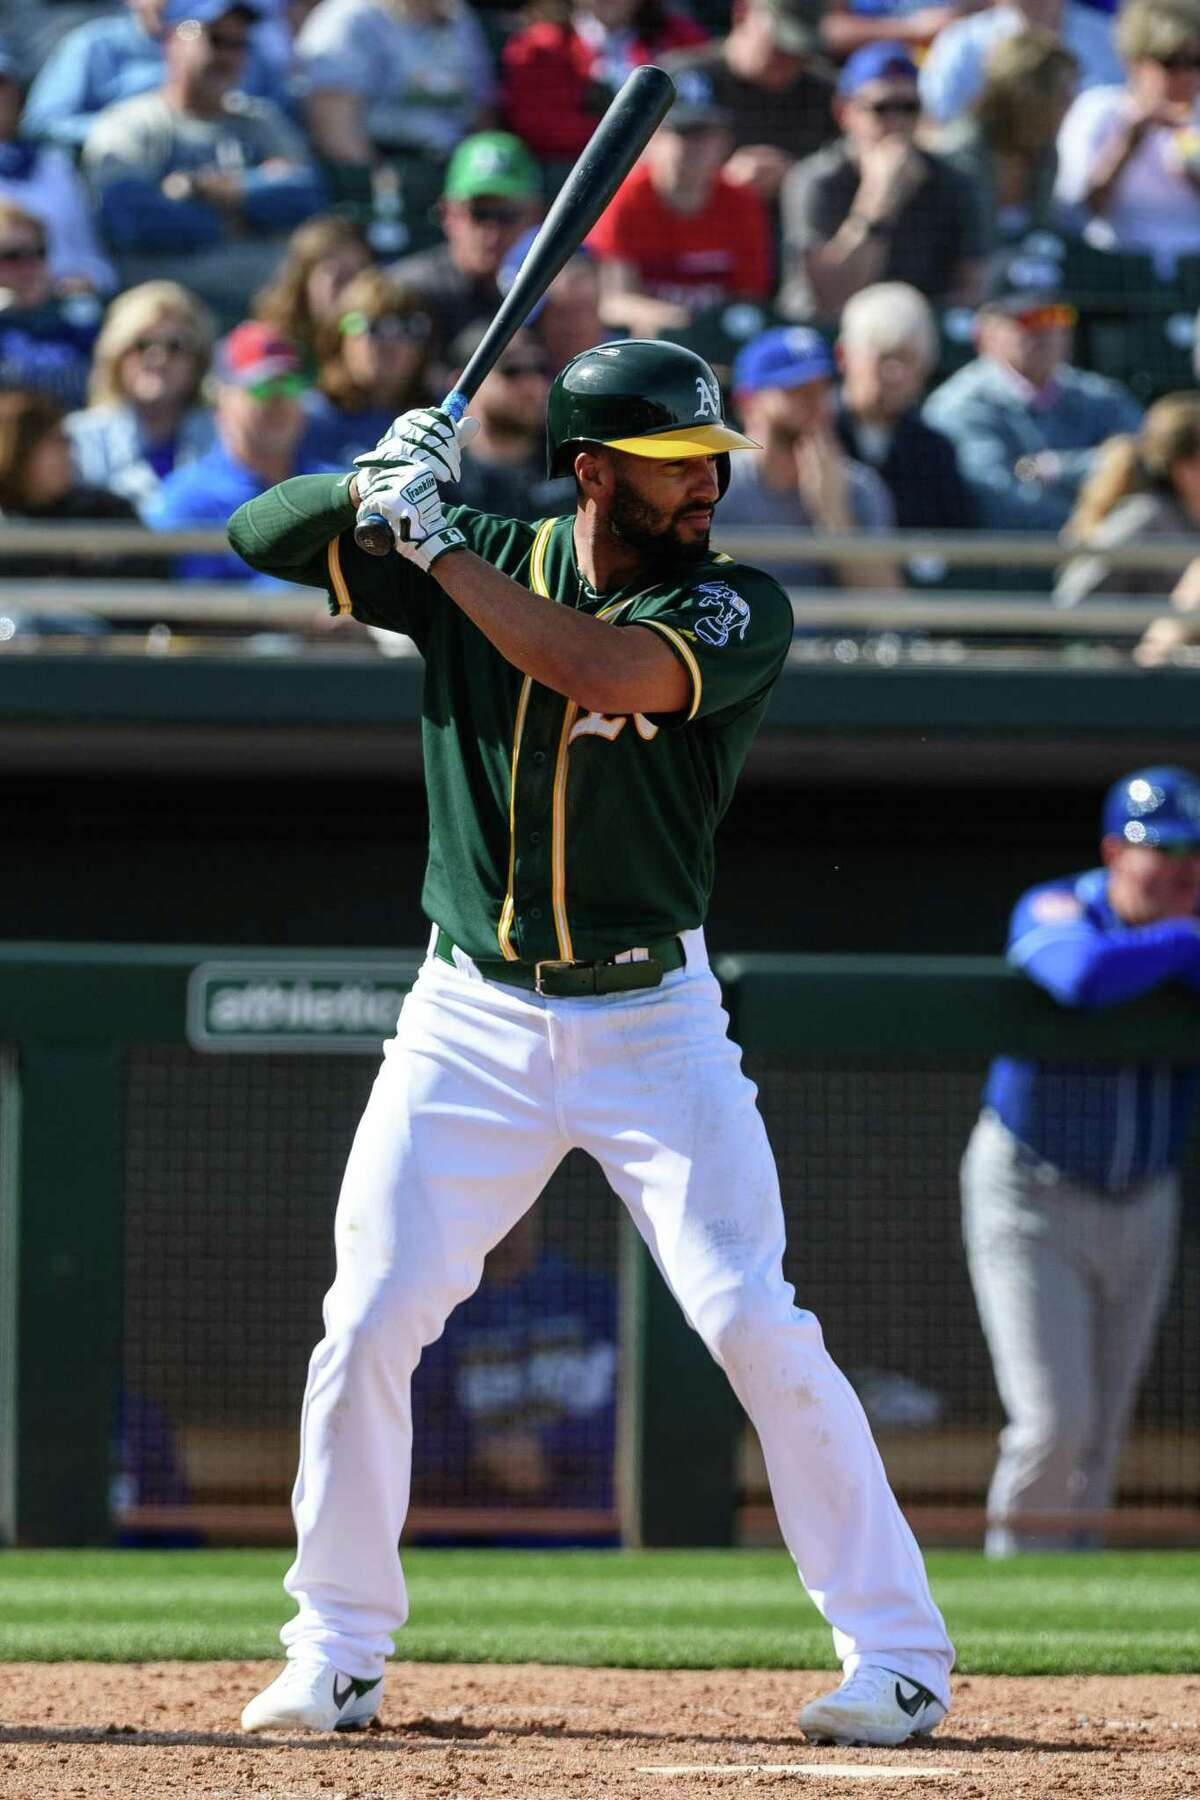 Marcus Semien #10 of the Oakland Athletics stands at bat in the spring training game against the Kansas City Royals at HoHoKam Stadium on February 24, 2019 in Mesa, Arizona.